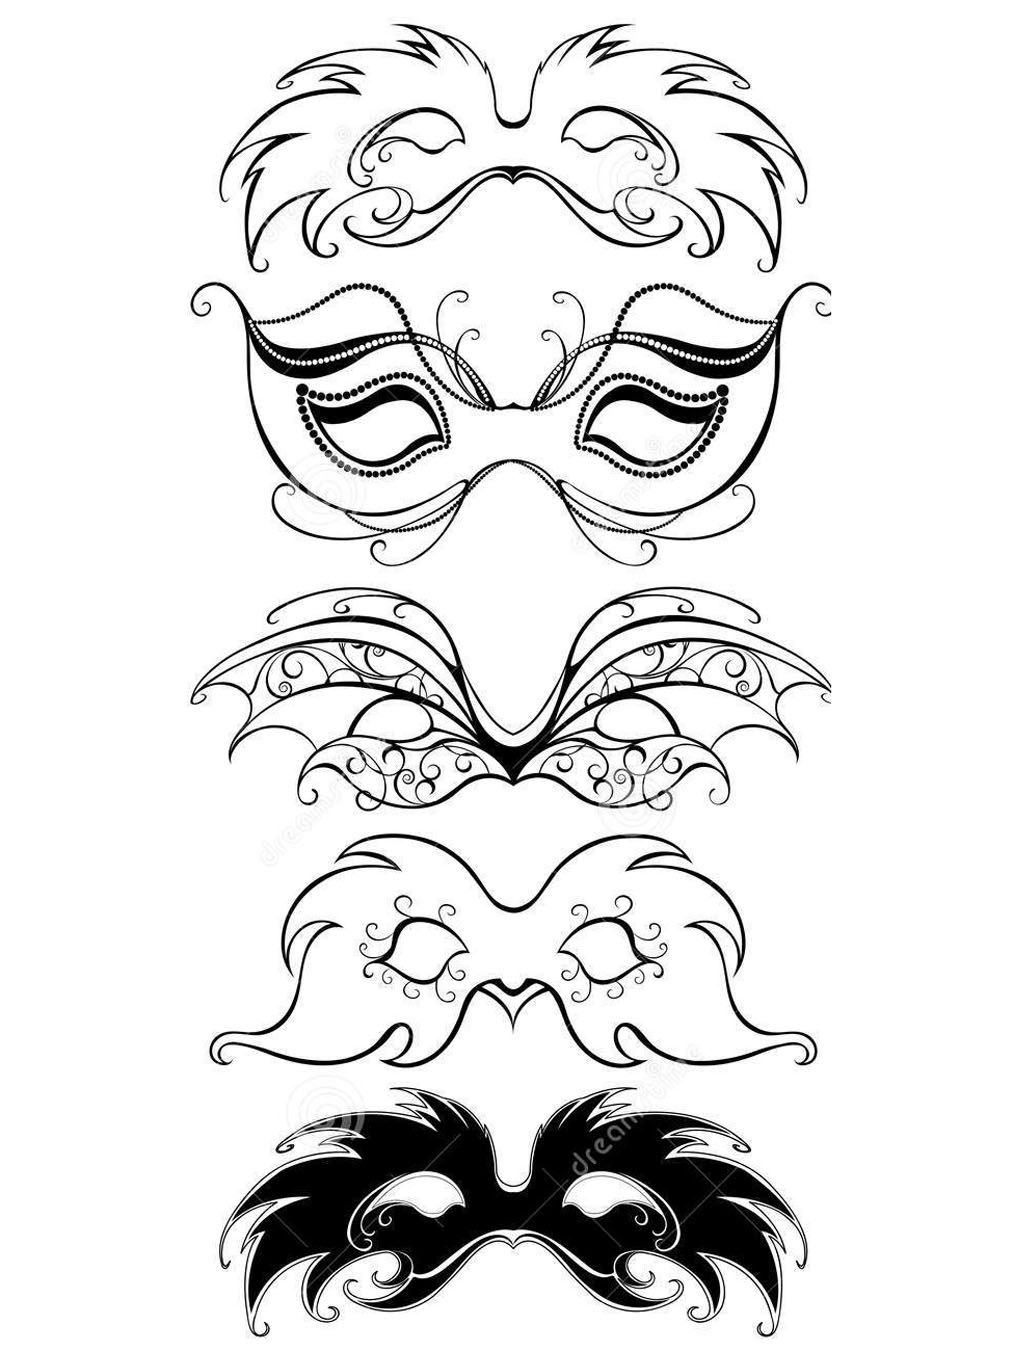 Http free stock photos black - Coloriage masque a imprimer ...